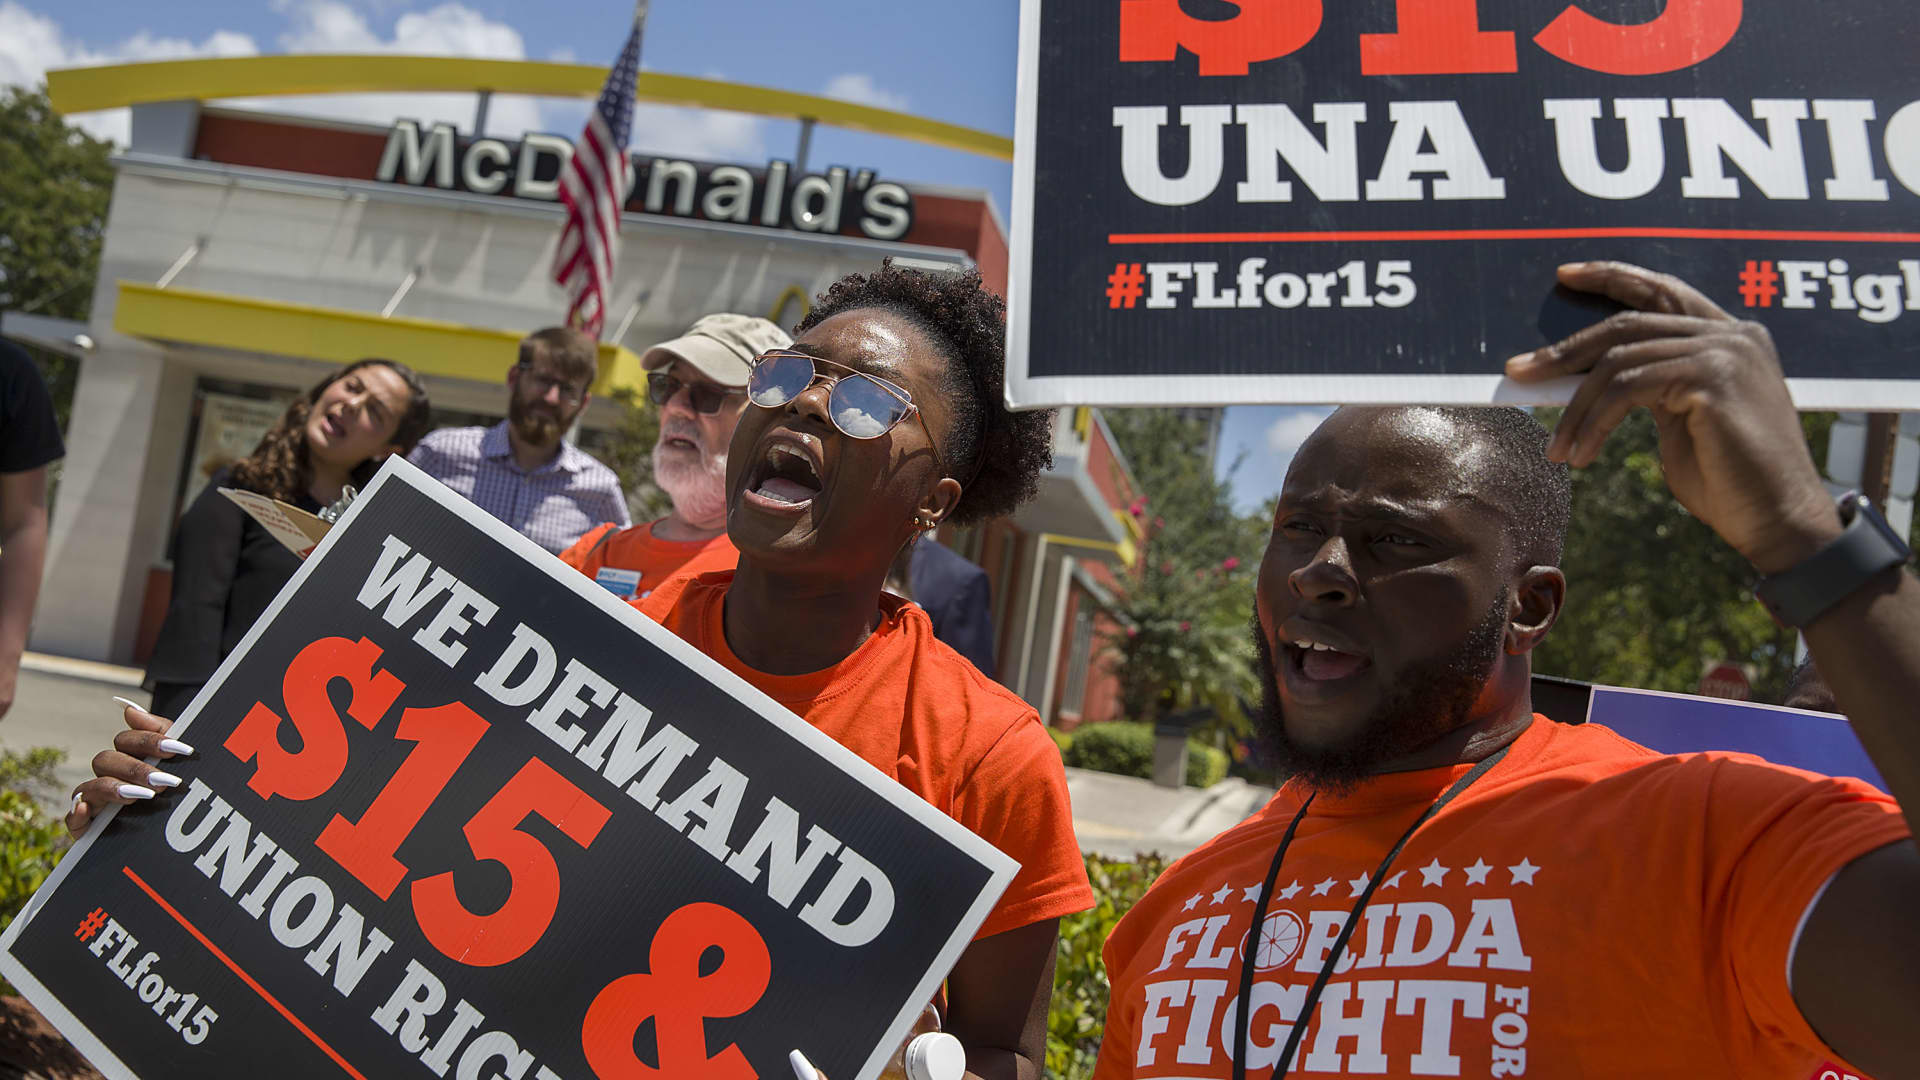 Protestors call for McDonald's Corporation to raise wages to a $15 minimum and allow unionization in Fort Lauderdale, Florida.